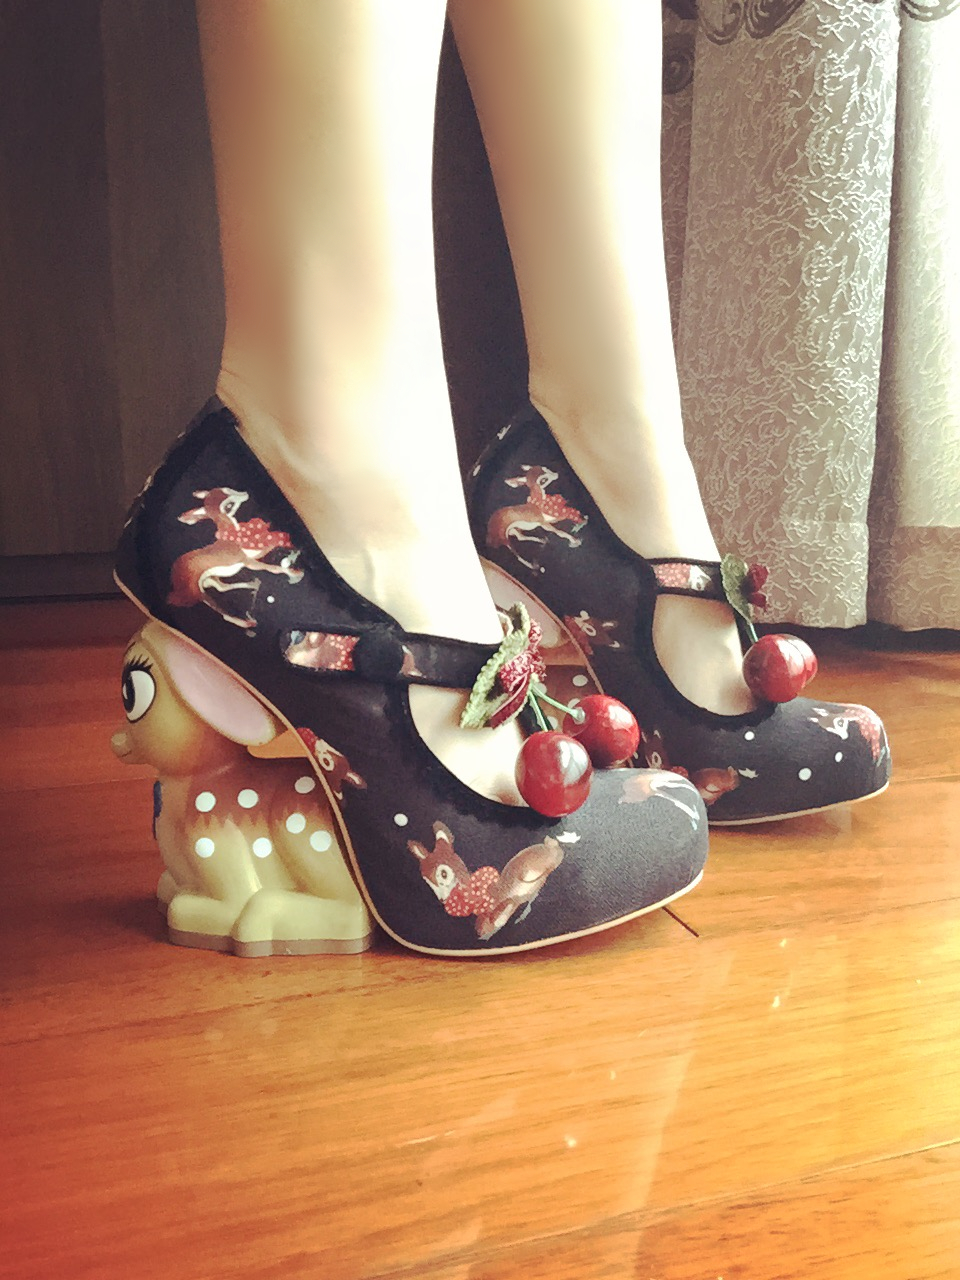 Cute Fawn Strange Heel Spring New Arrival Mary Janes Shoes Cherry Embellished Wedding Shoes Round Toe Embroidered Cotton Shoes s